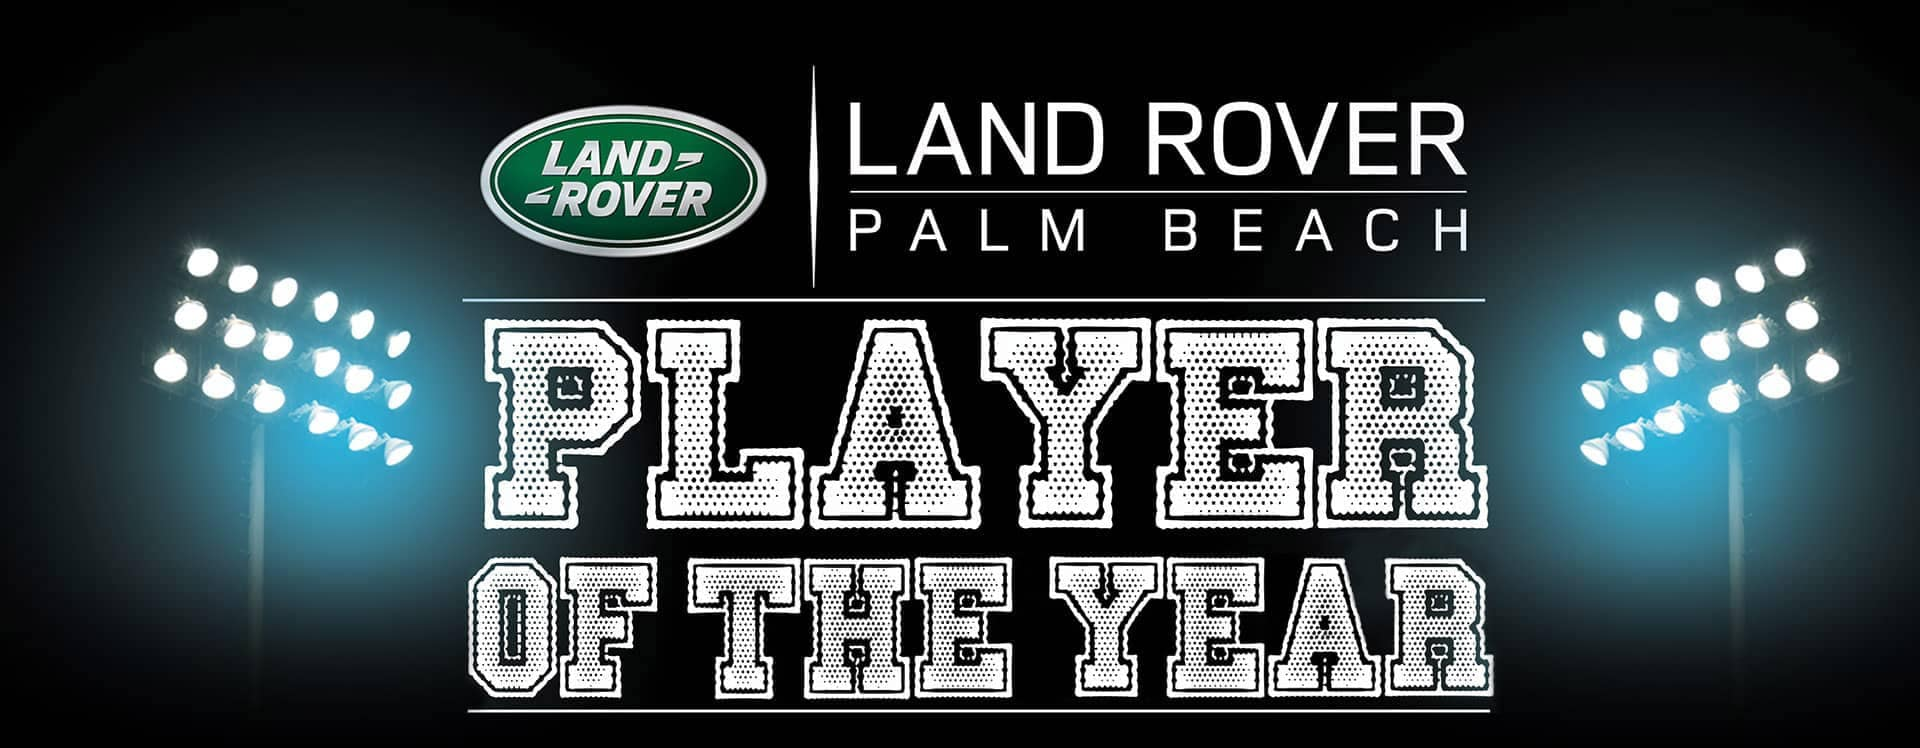 Land Rover Player of the Year